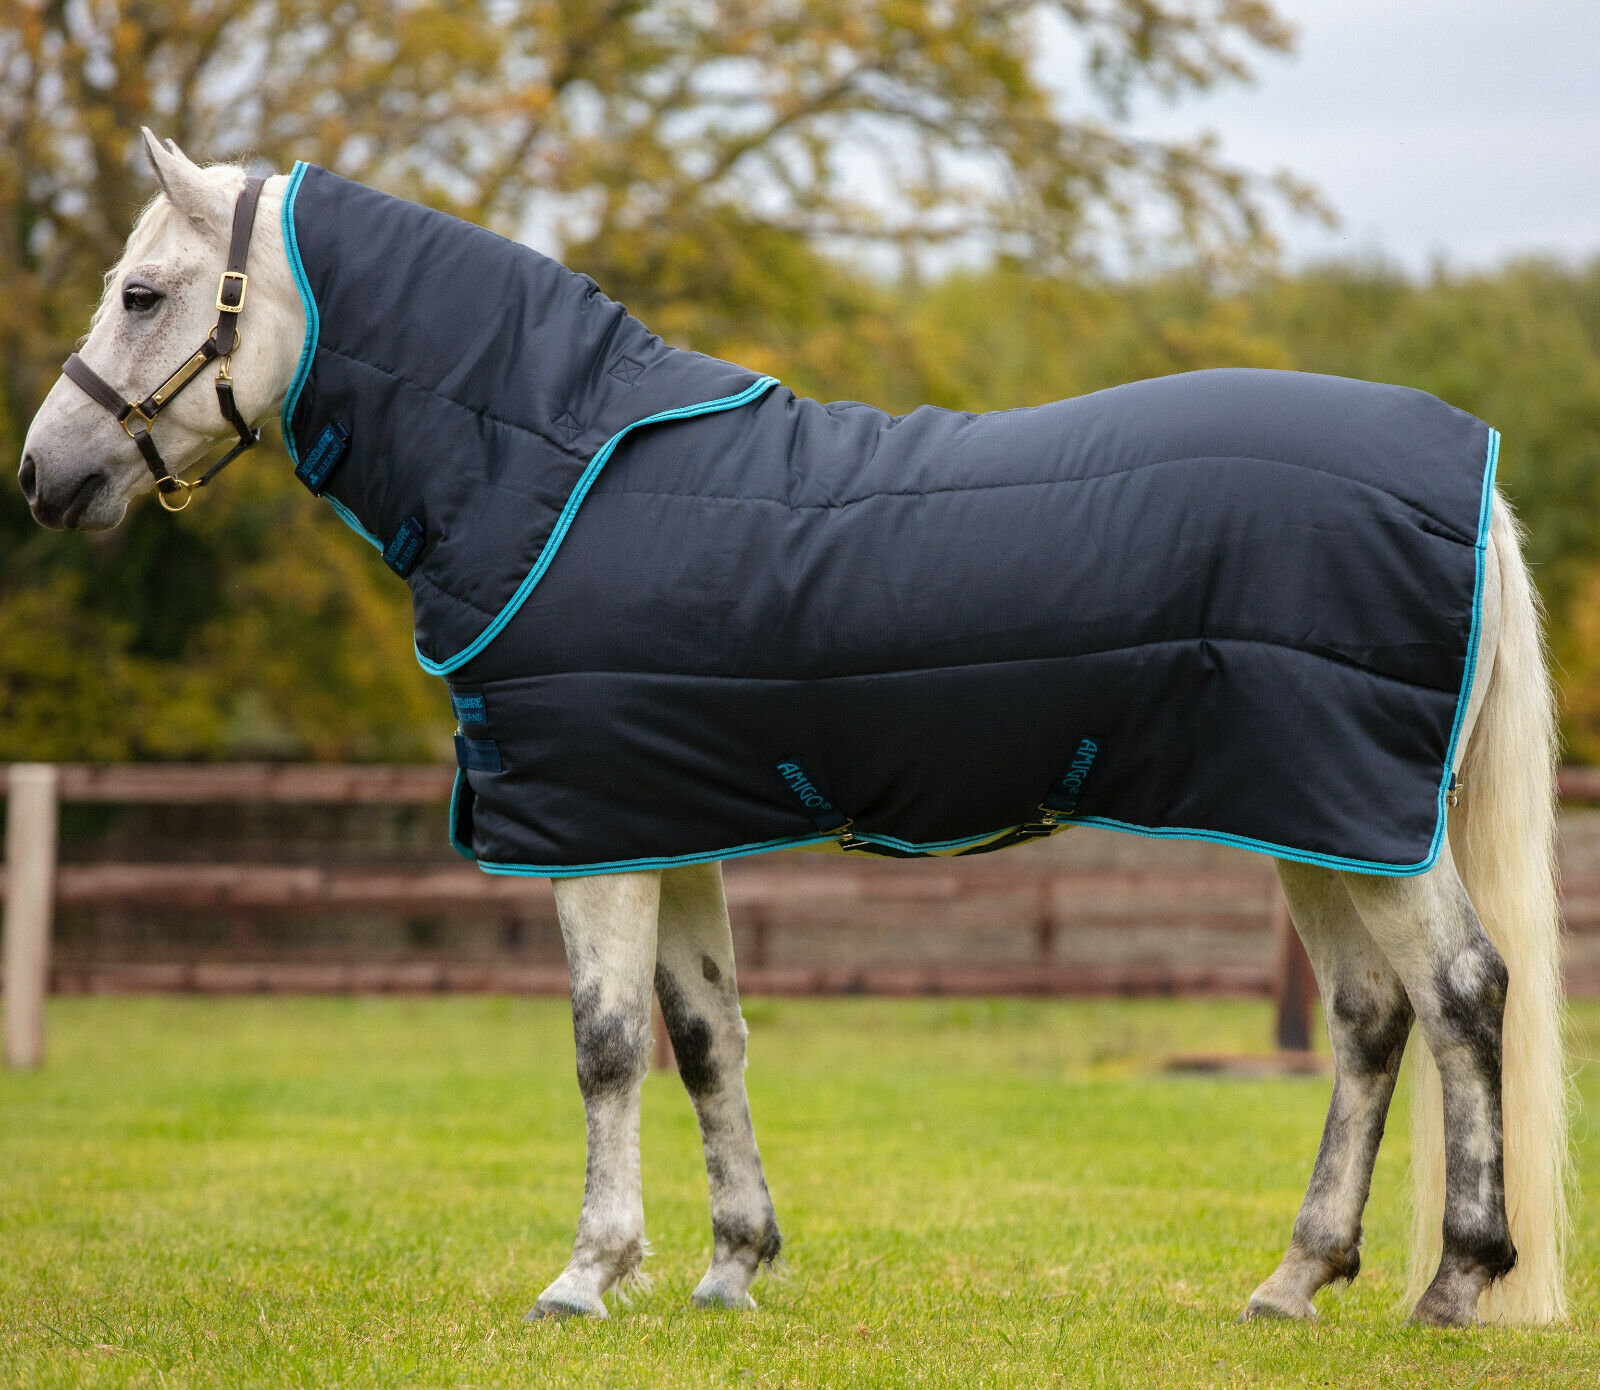 Horseware Amigo PONY BRAVO PLUS 1200d TURNOUT Rug Lightweight 0g Navy 3/'9-5/'9